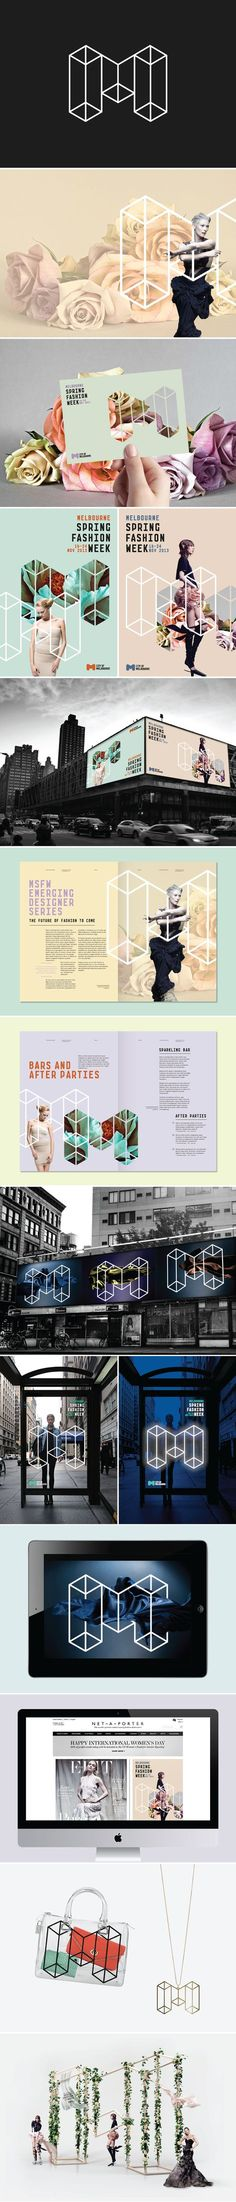 Designed at Landor SydneyWe were asked to create an identity for Melbourne's 'Premier Events' (e.g. Melbourne Spring Fashion Week, Melbourne Music Week, etc) that would promote the city's events, whilst giving recognition to its owner and manager, the '…